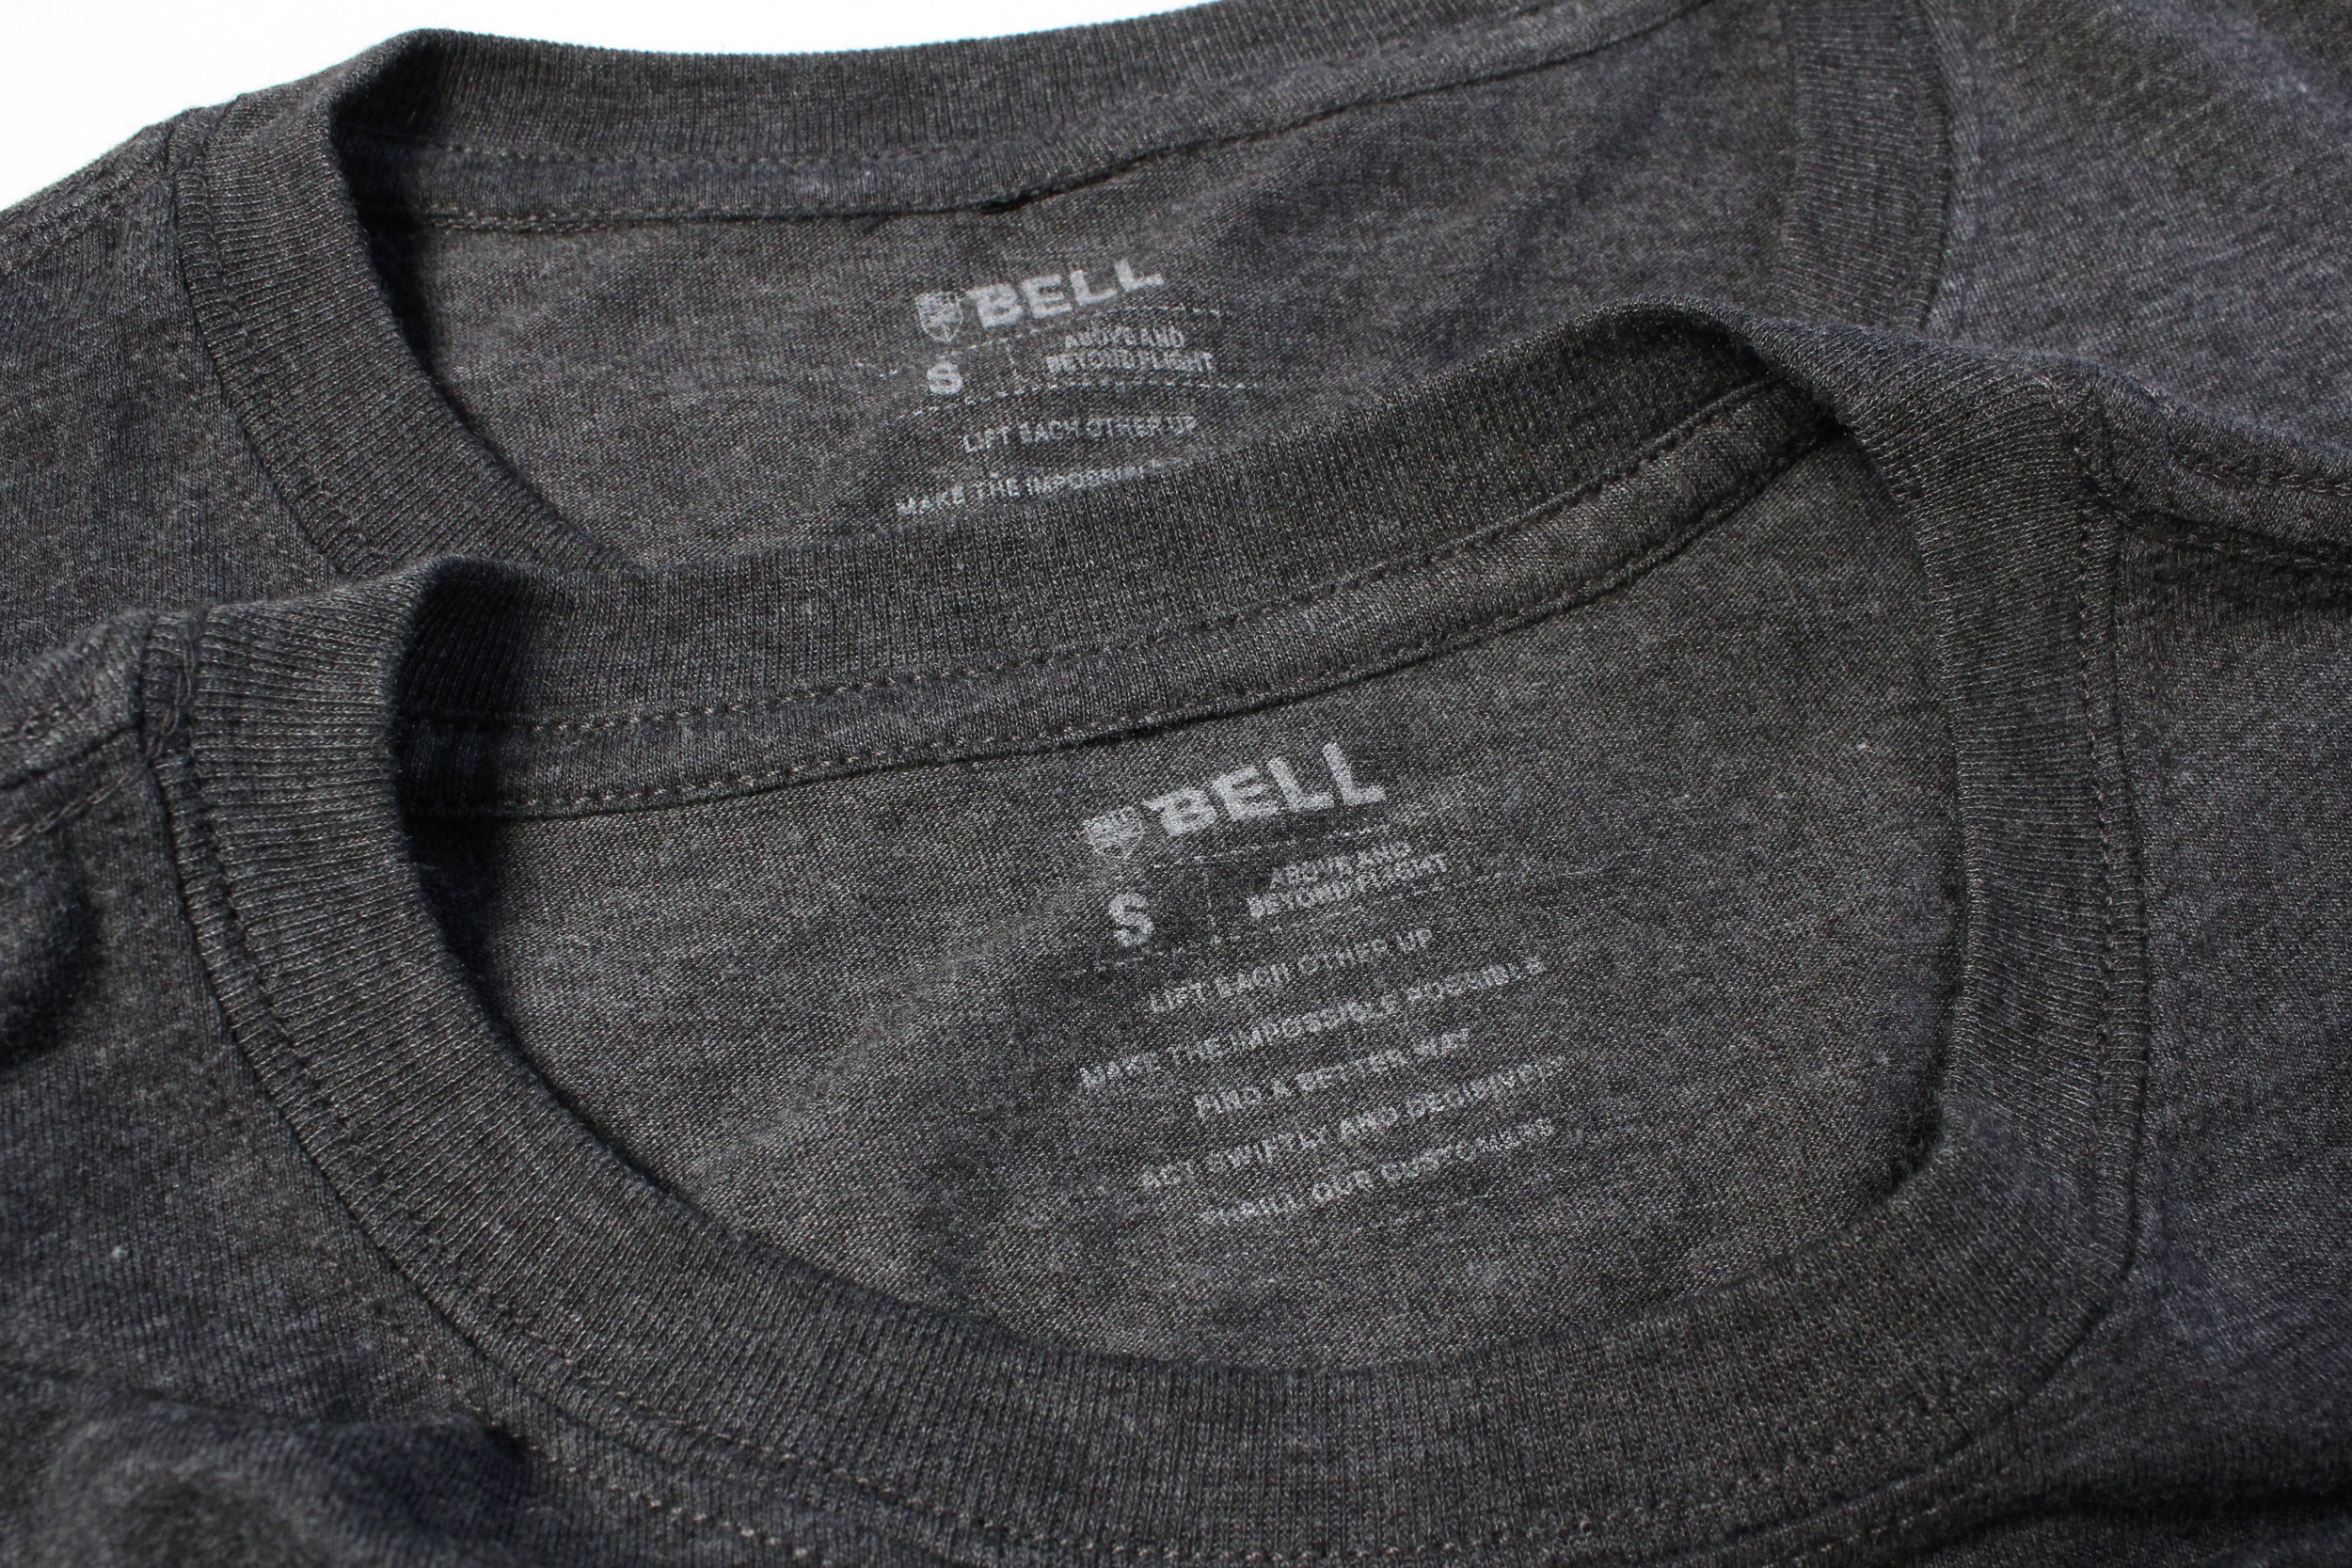 Bell-Launch-Tshirt-2.jpg